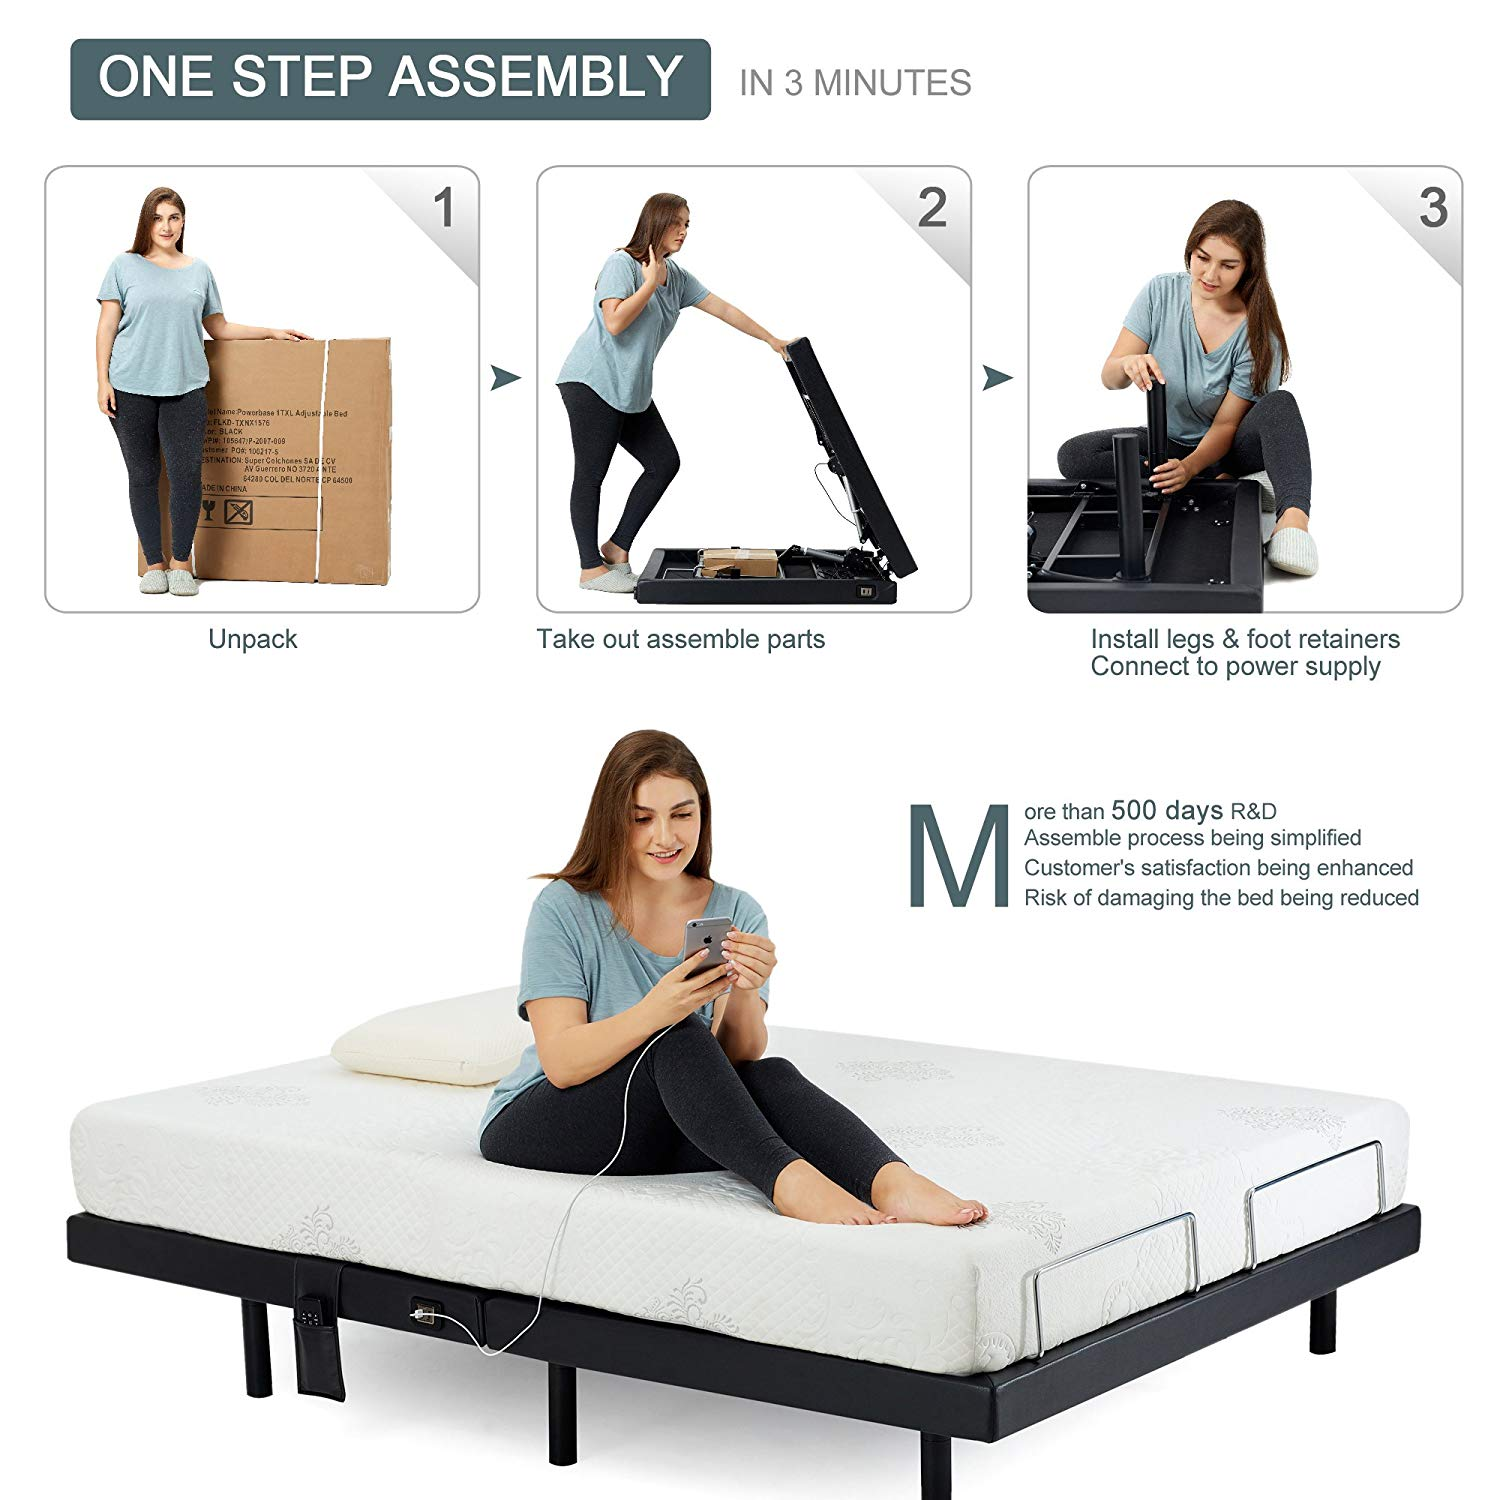 Split King Adjustable Beds Reviews -Hofish 1-Step assembly